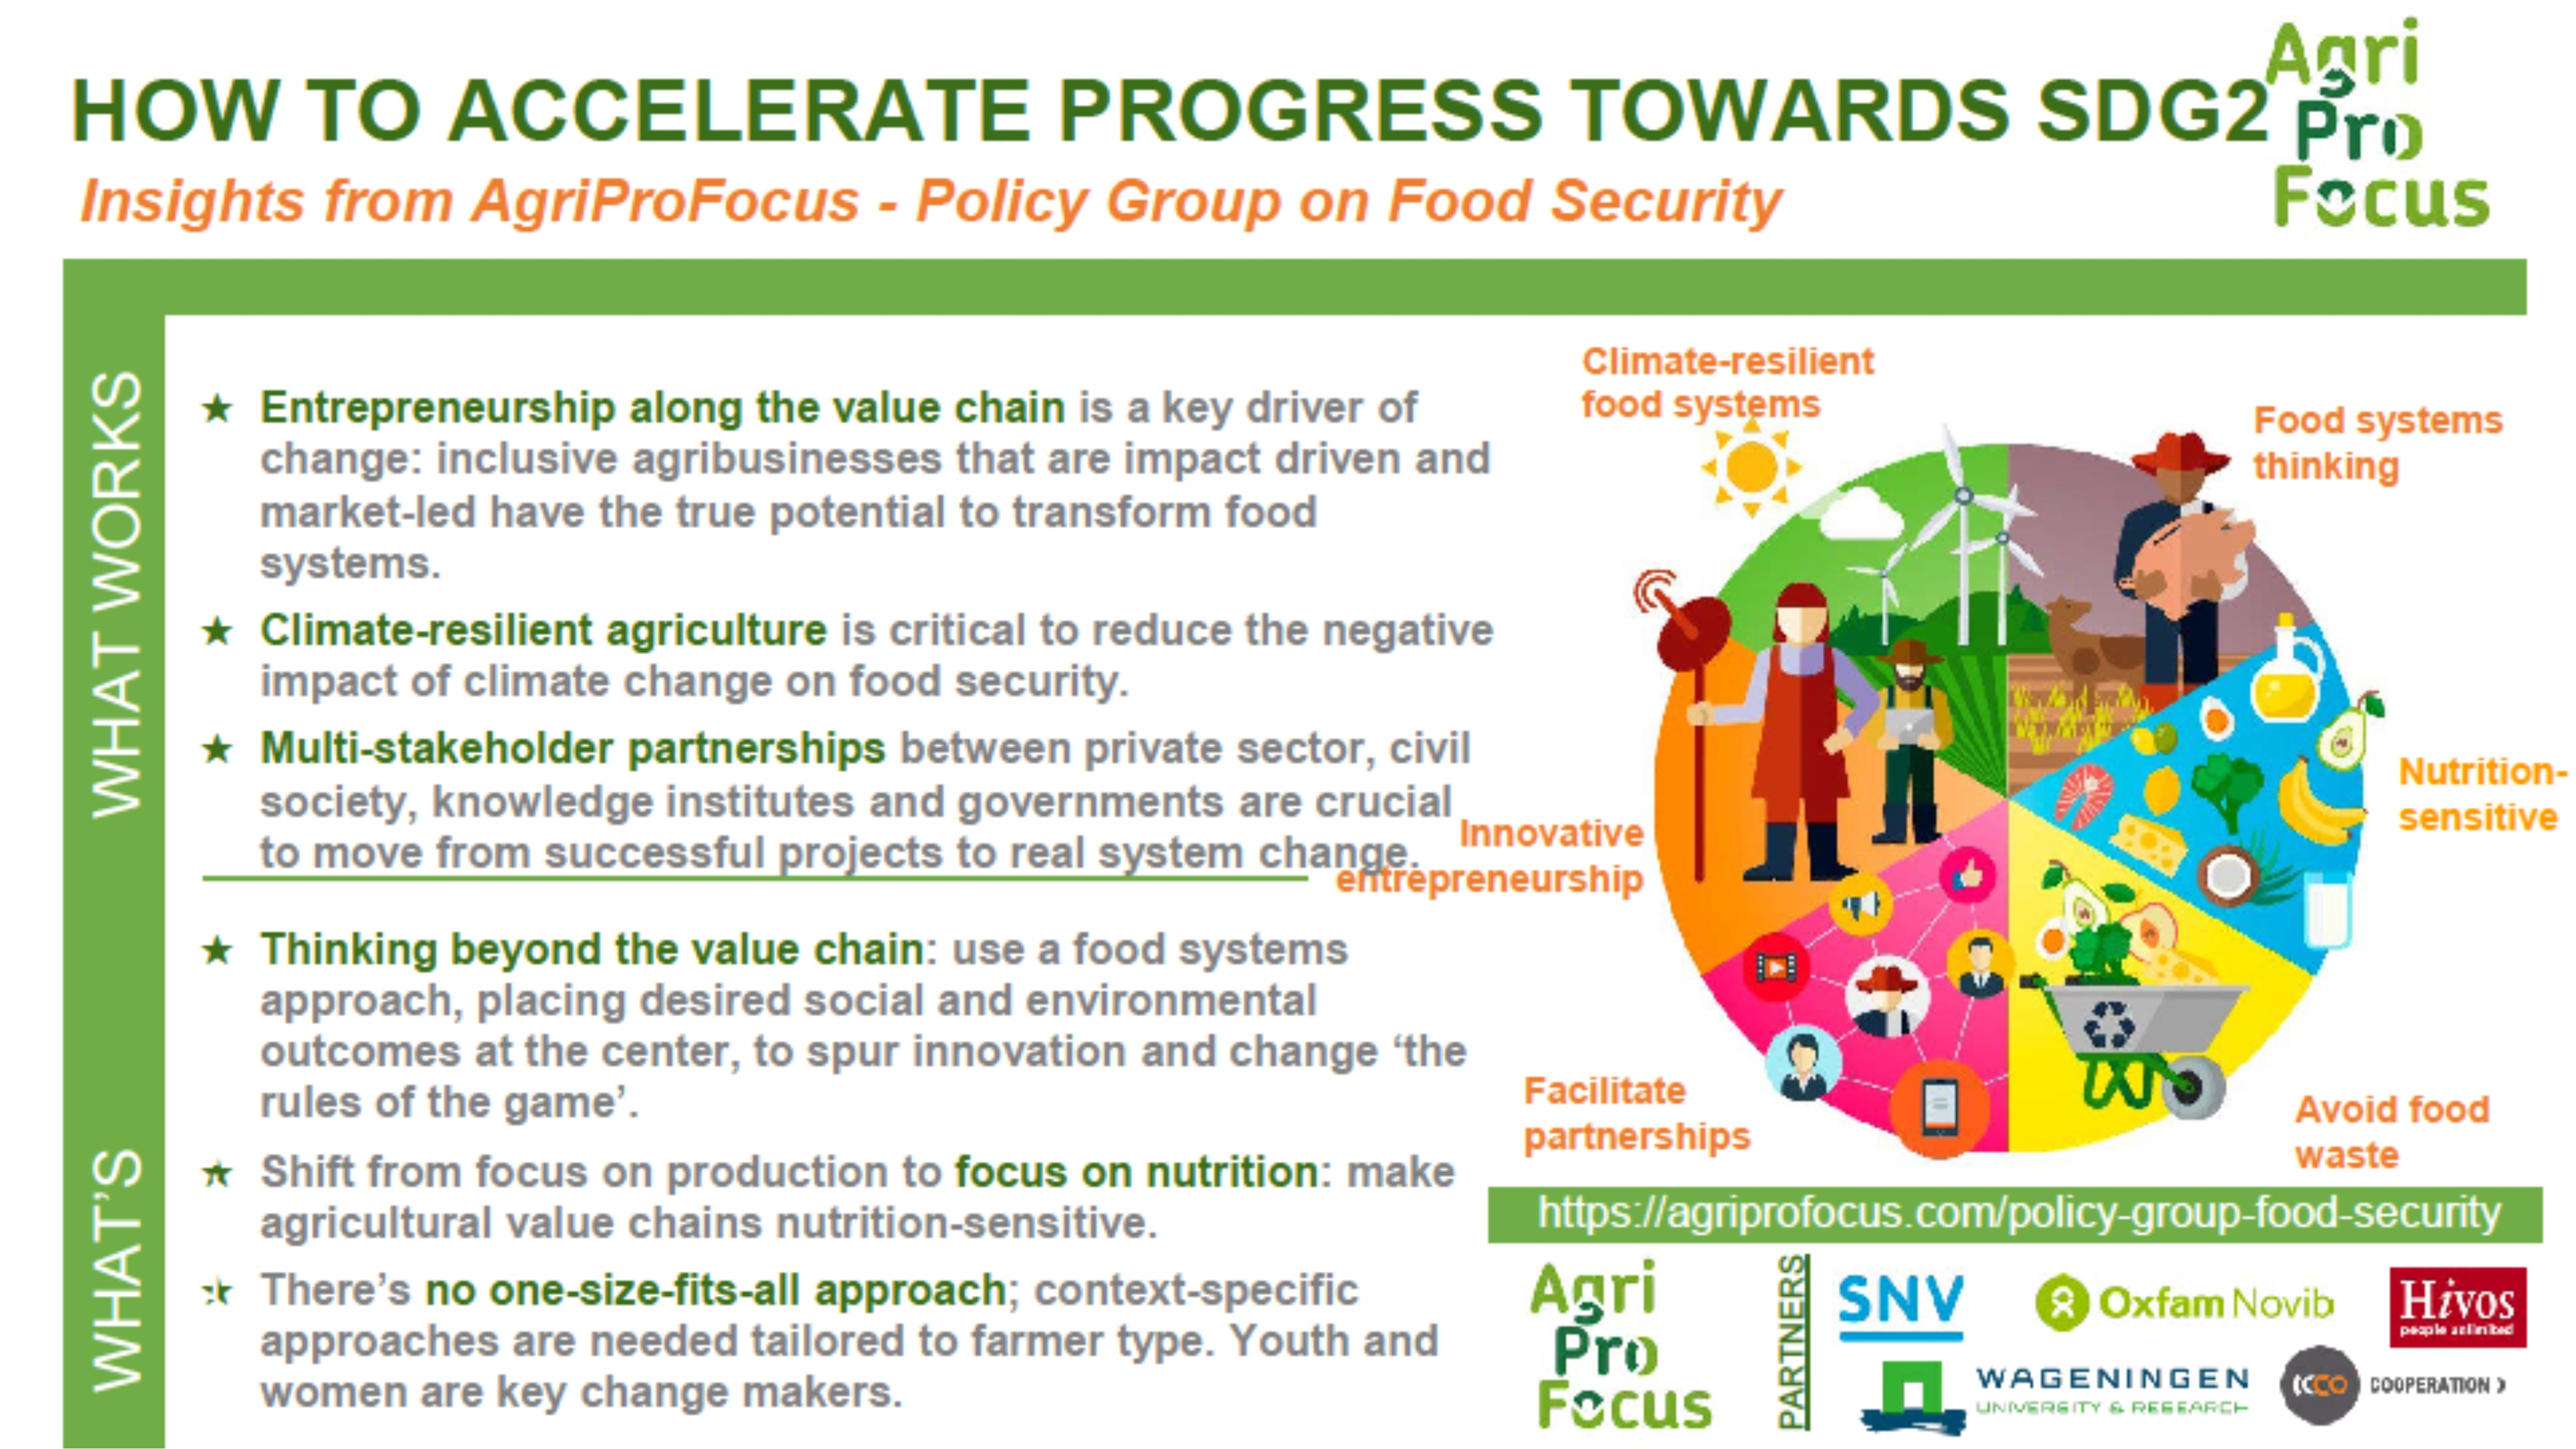 Insights from AgriProFocus - Policy Group on Food Security